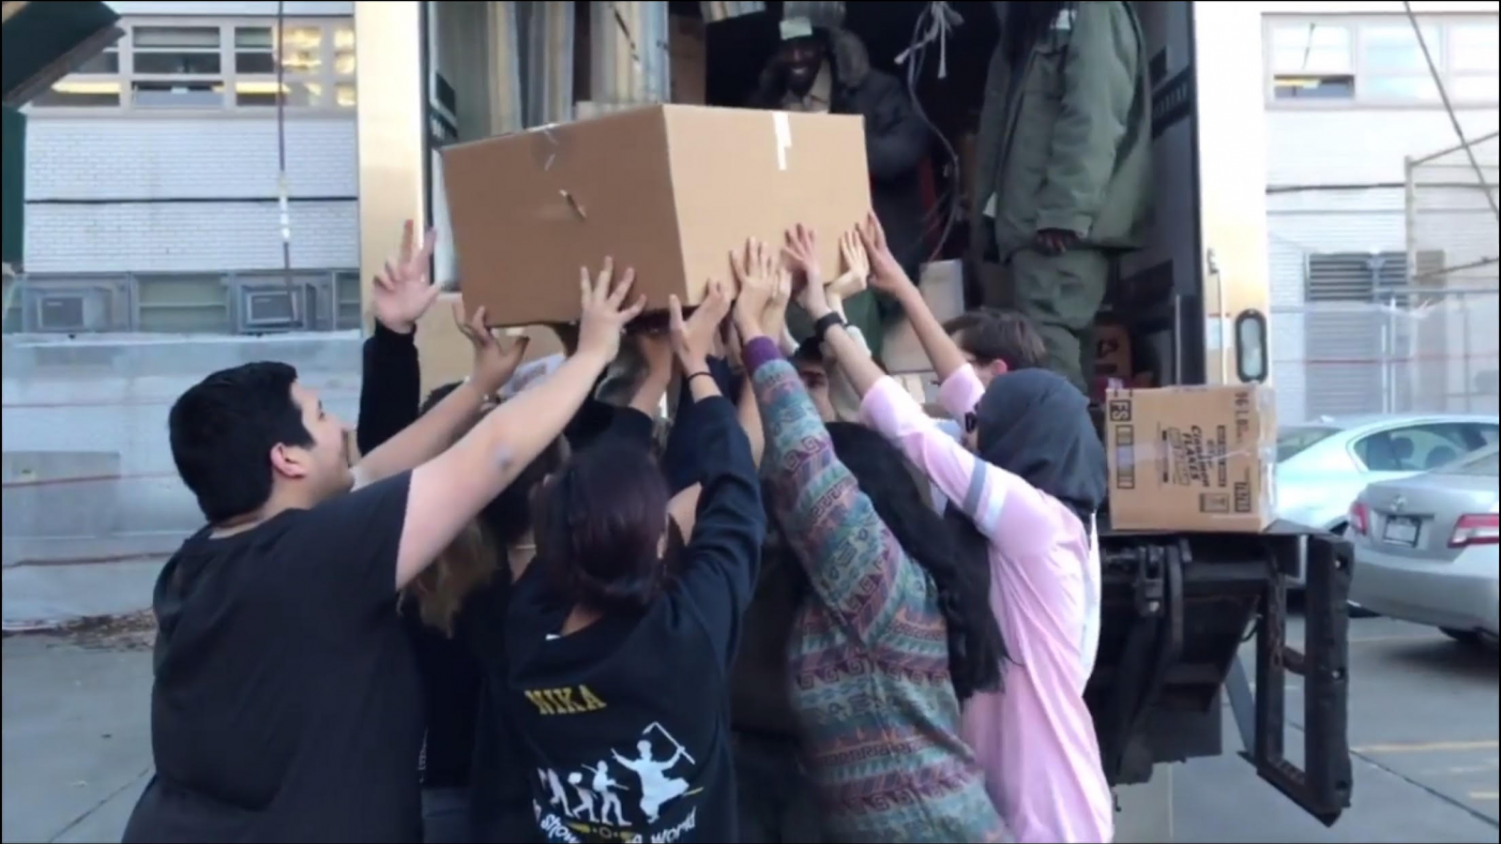 The SO collaboratively hoists a heavy box onto the City Harvest truck.